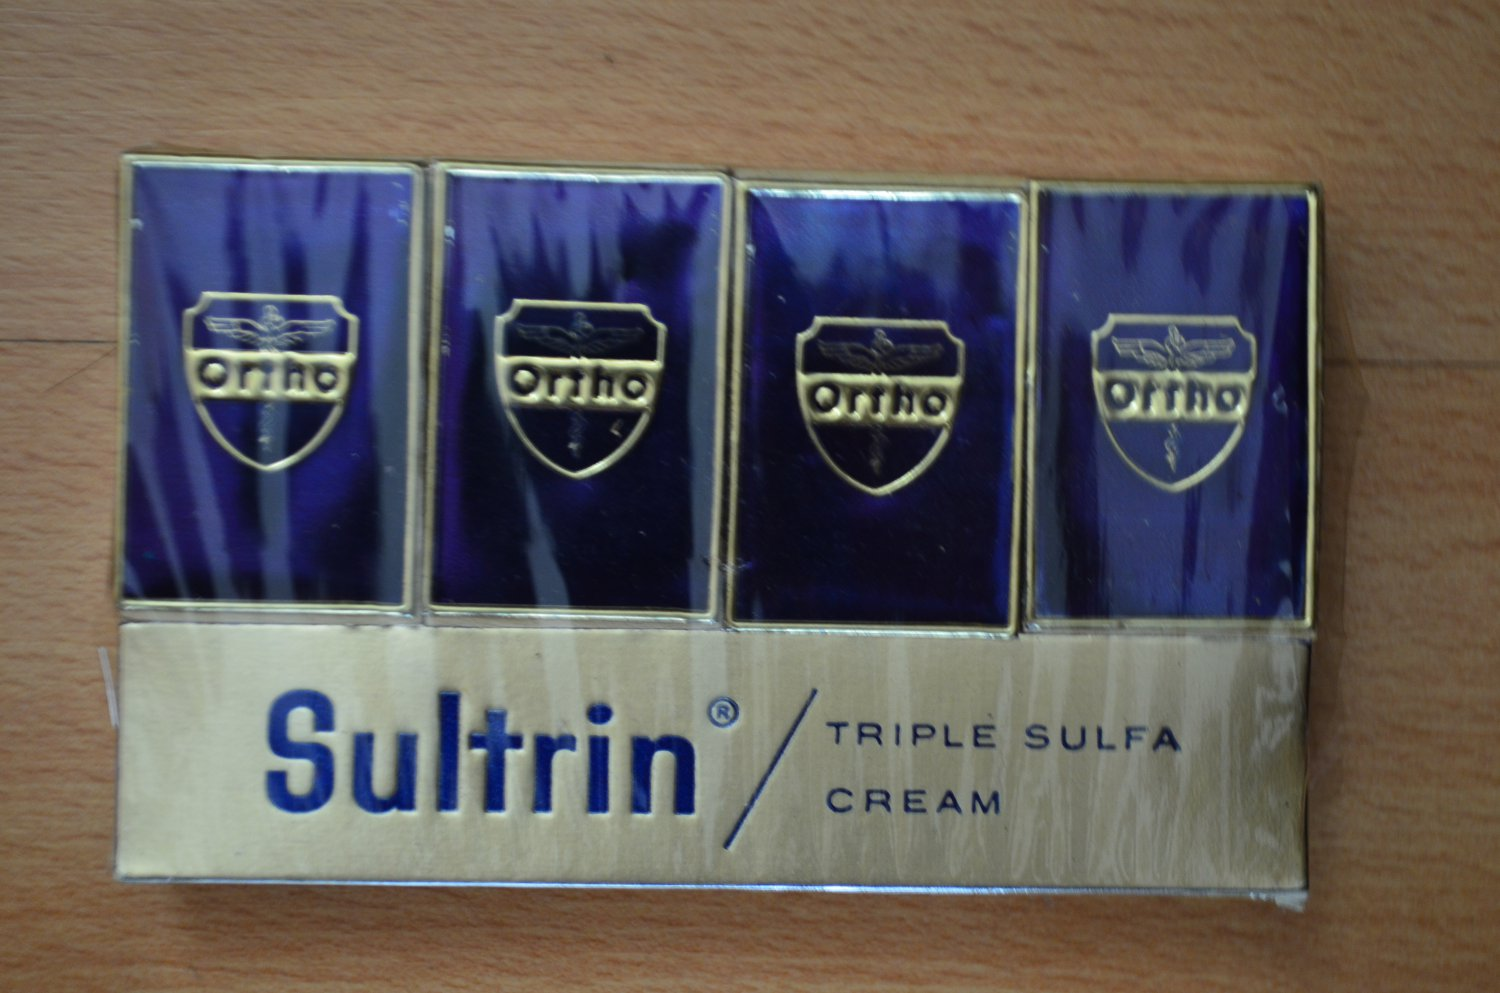 VINTAGE SULTRIN ORTHO ADVERTISING MATCHES Box Triple Sulfa Cream 4 New Matchbox